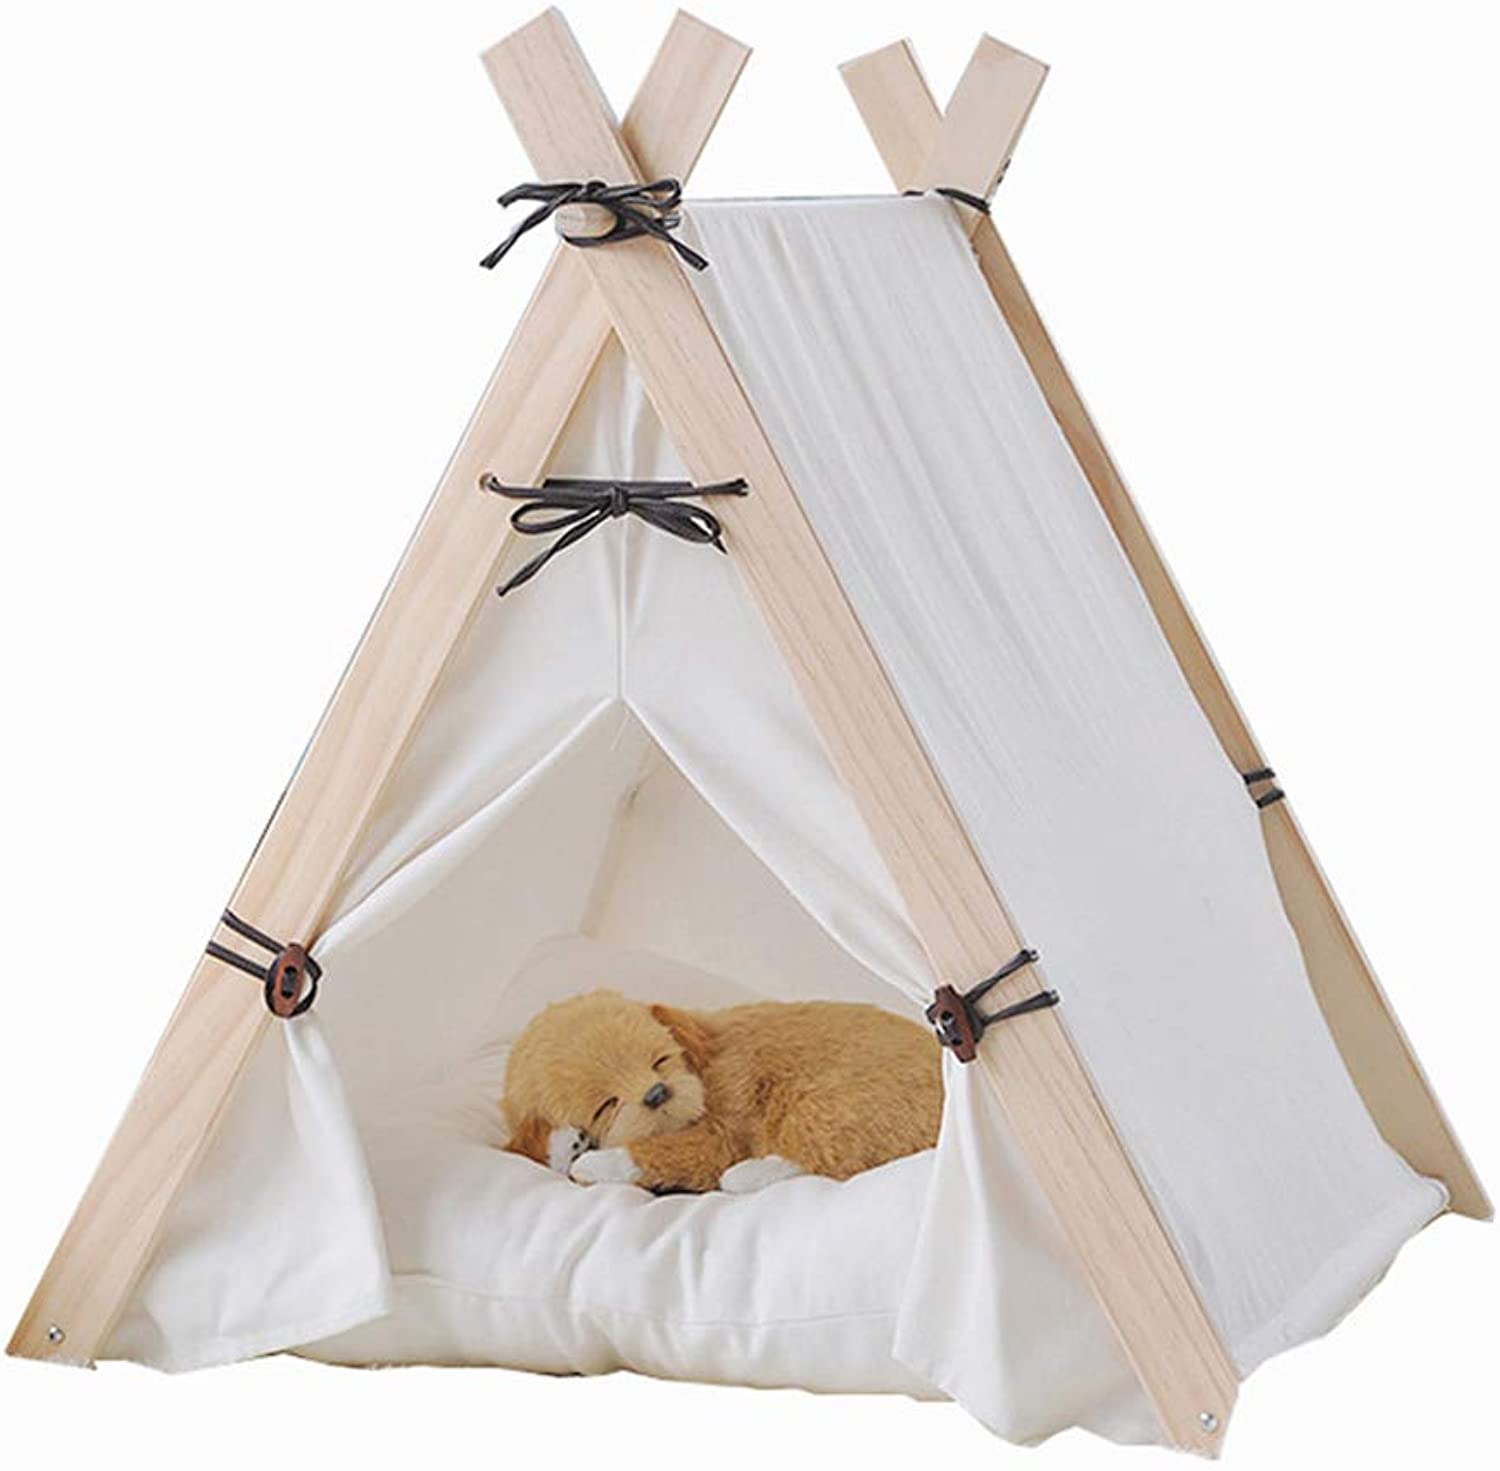 JIANXIN Pet Tent, SemiEnclosed Cat Nest, Kennel, Portable Folding, Suitable for Cats and Small Dogs, Suitable for All Seasons